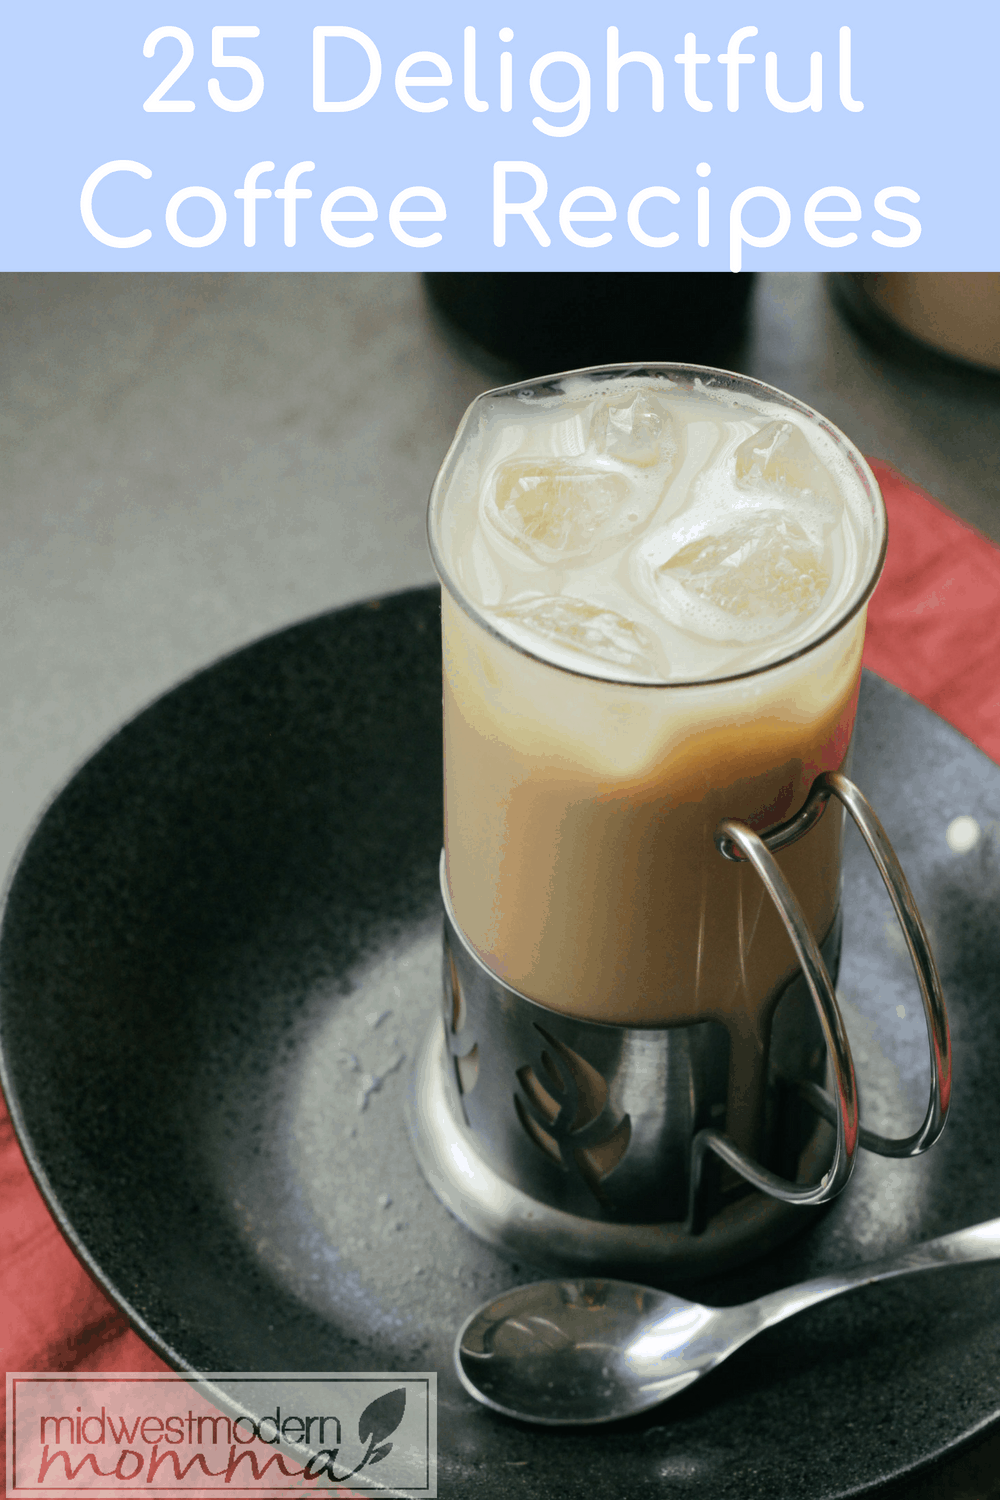 Homemade Coffee Recipes are a must to save your budget while still enjoying your favorite treats! Check out one or all of these Delightful Coffee Recipes that are easy and delicious!